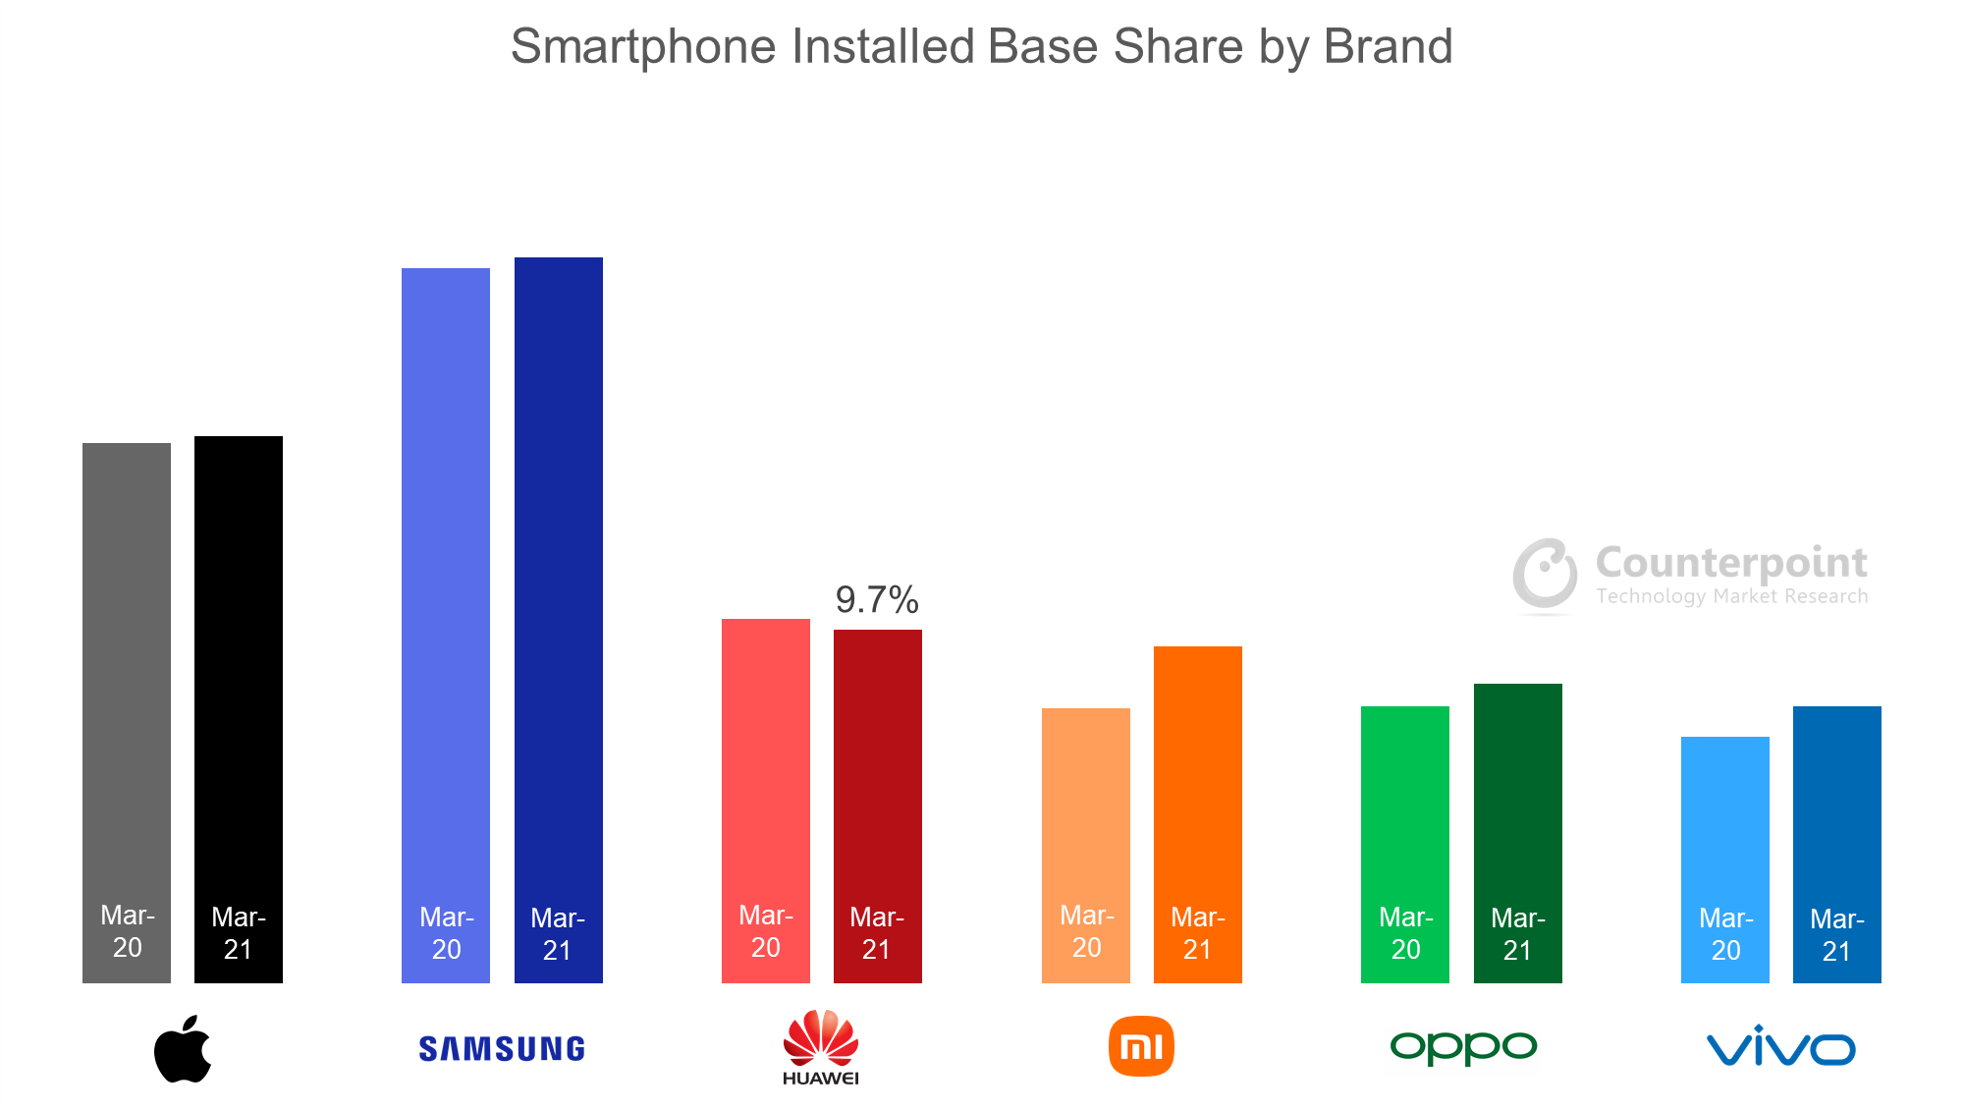 Counterpoint Research Smartphone Installed Base Share by Brand